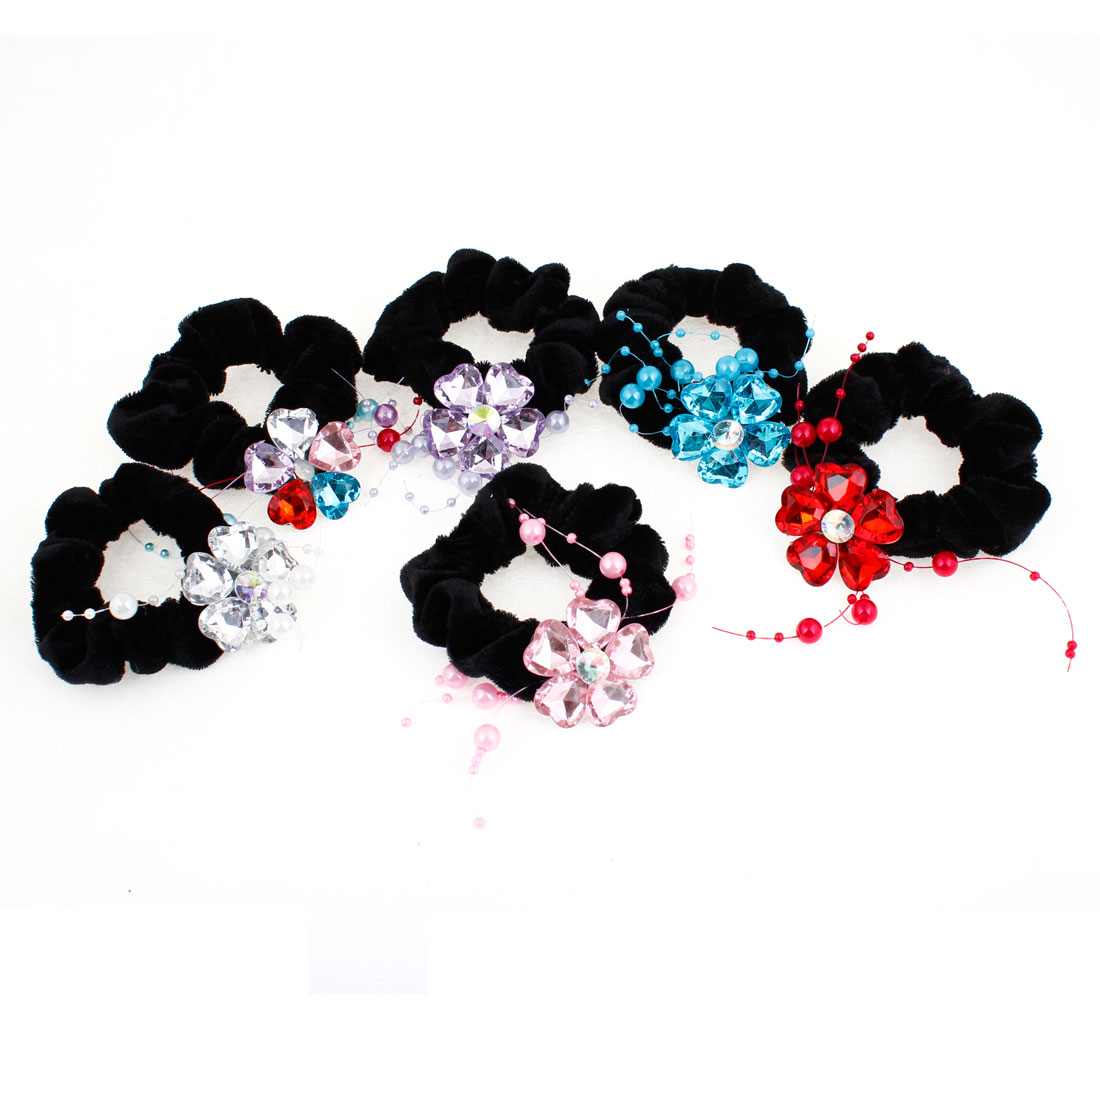 6 Pcs Plastic Beads Inlaid Flower Decor Black Velvet Ponytail Holder Hairband